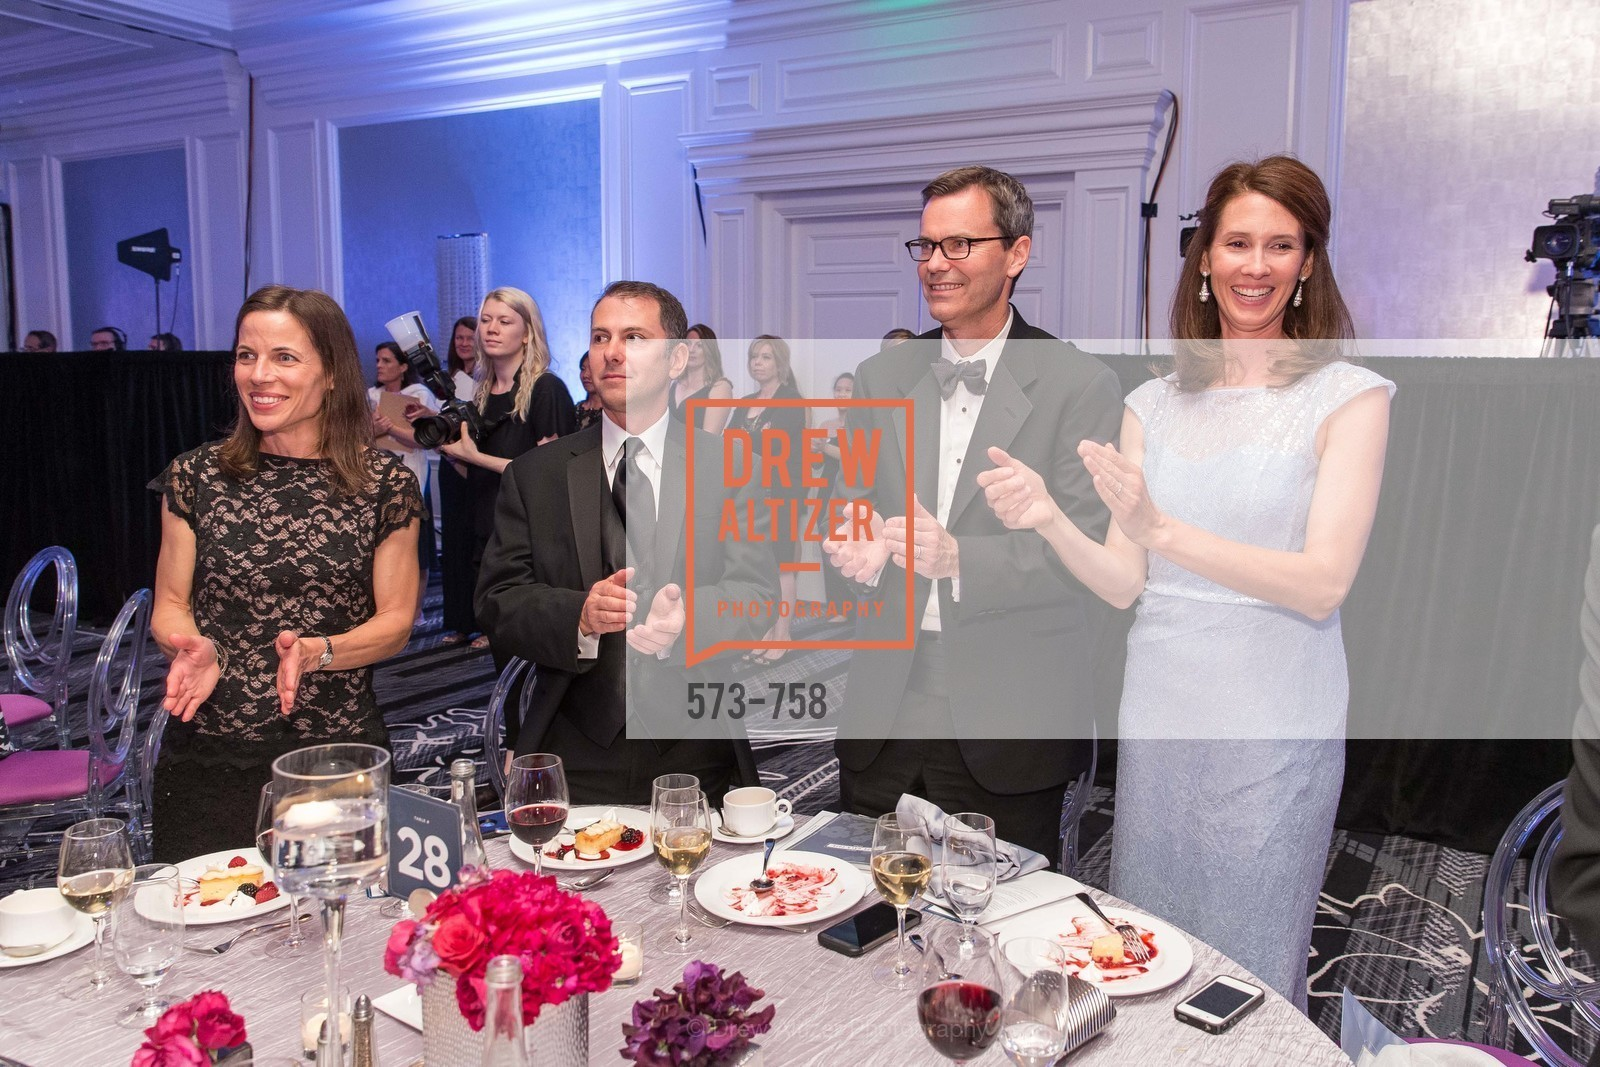 Sarah Kennedy, Tony Tafkins, Chad Lewis, Amy Lewis, JUVENILE DIABETES RESEARCH FOUNDATION  Hope Gala, US, May 30th, 2015,Drew Altizer, Drew Altizer Photography, full-service agency, private events, San Francisco photographer, photographer california